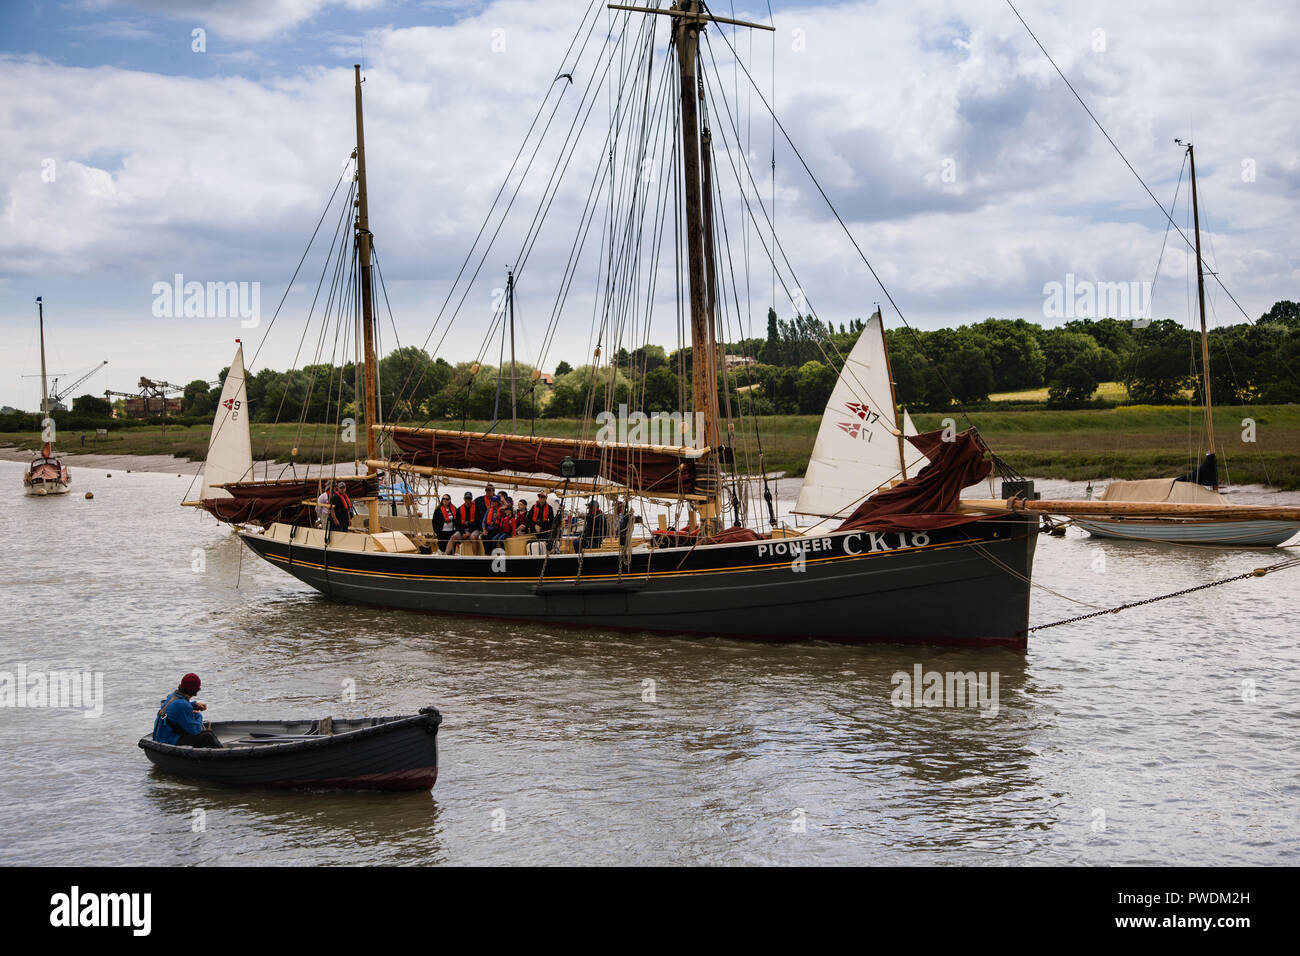 Essex barge and other boats on the river Colne at the Wivenhoe Regatta - Stock Image